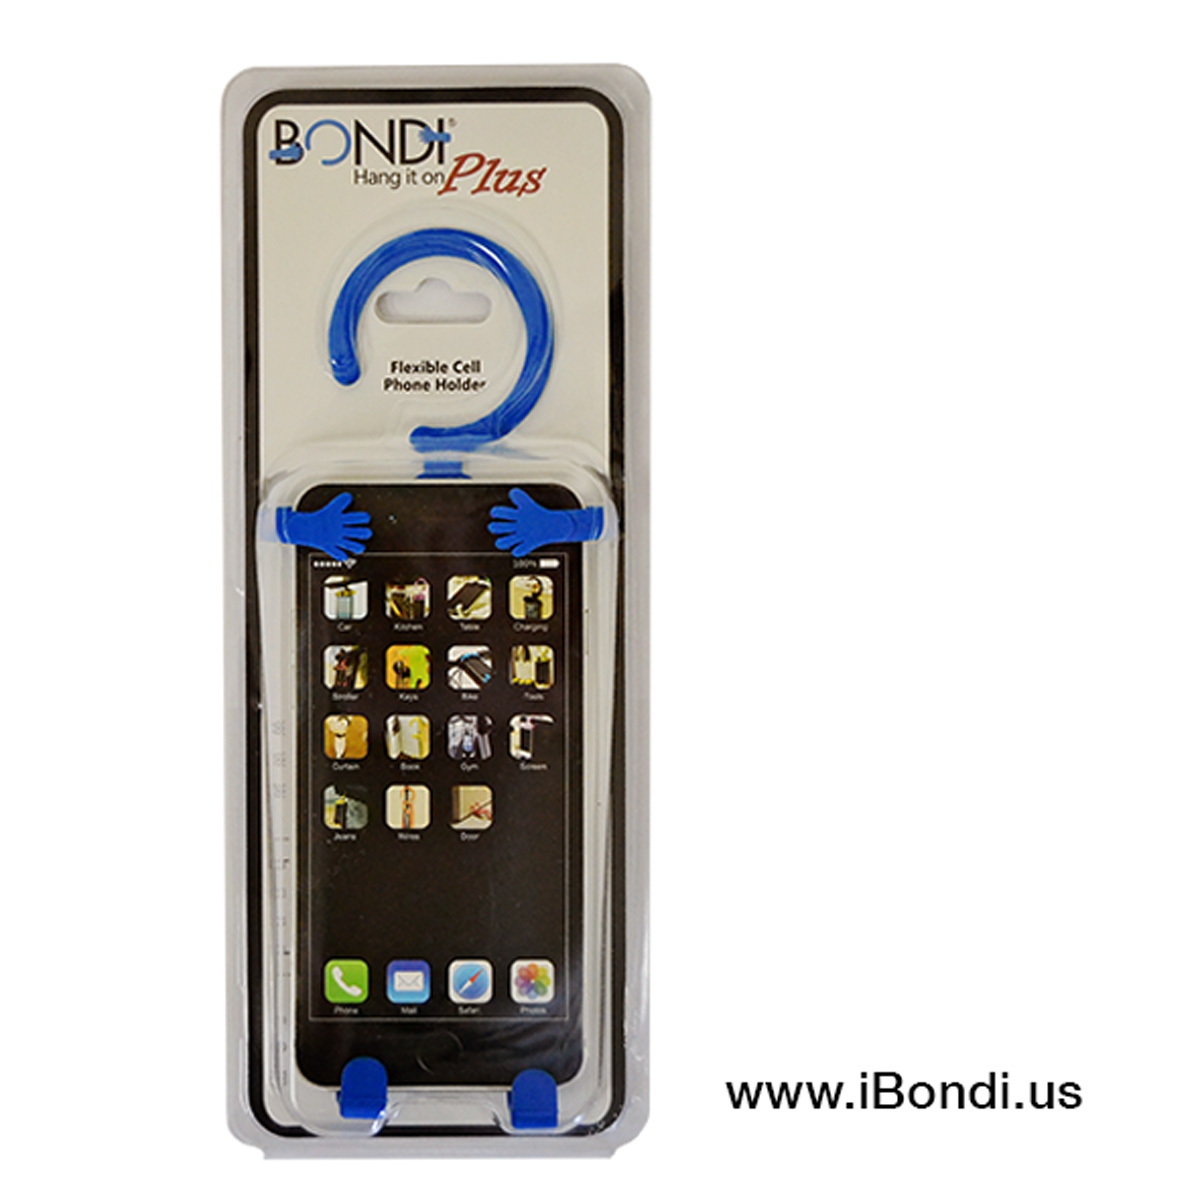 Bondi Plus Blue